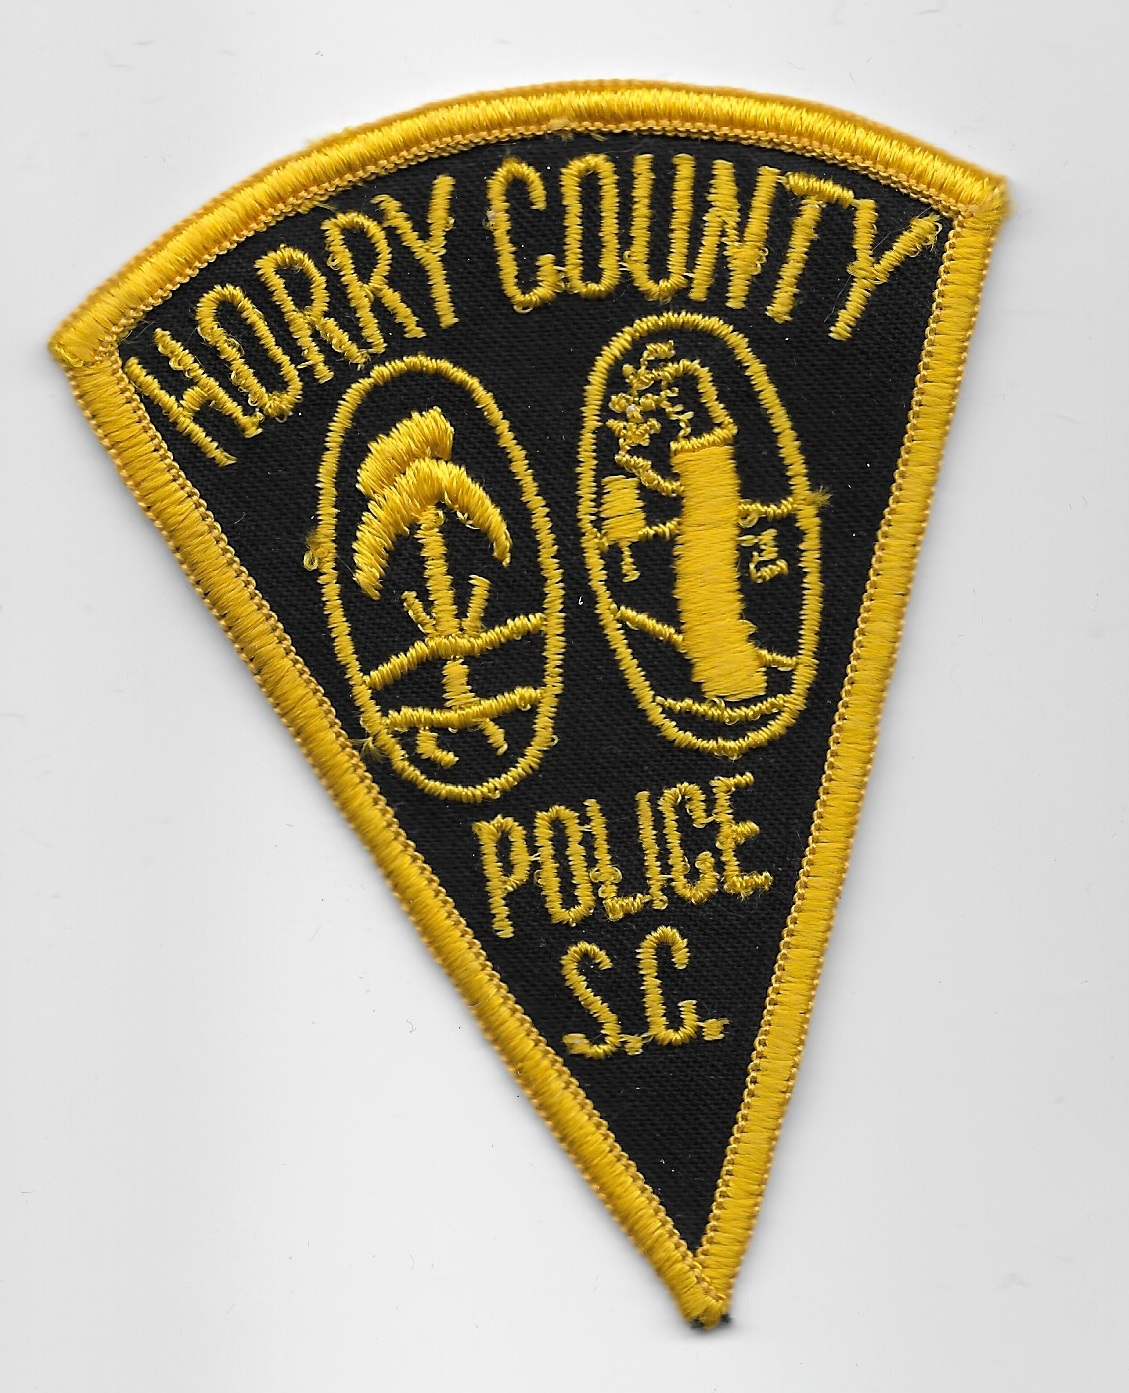 Horry County Police SC